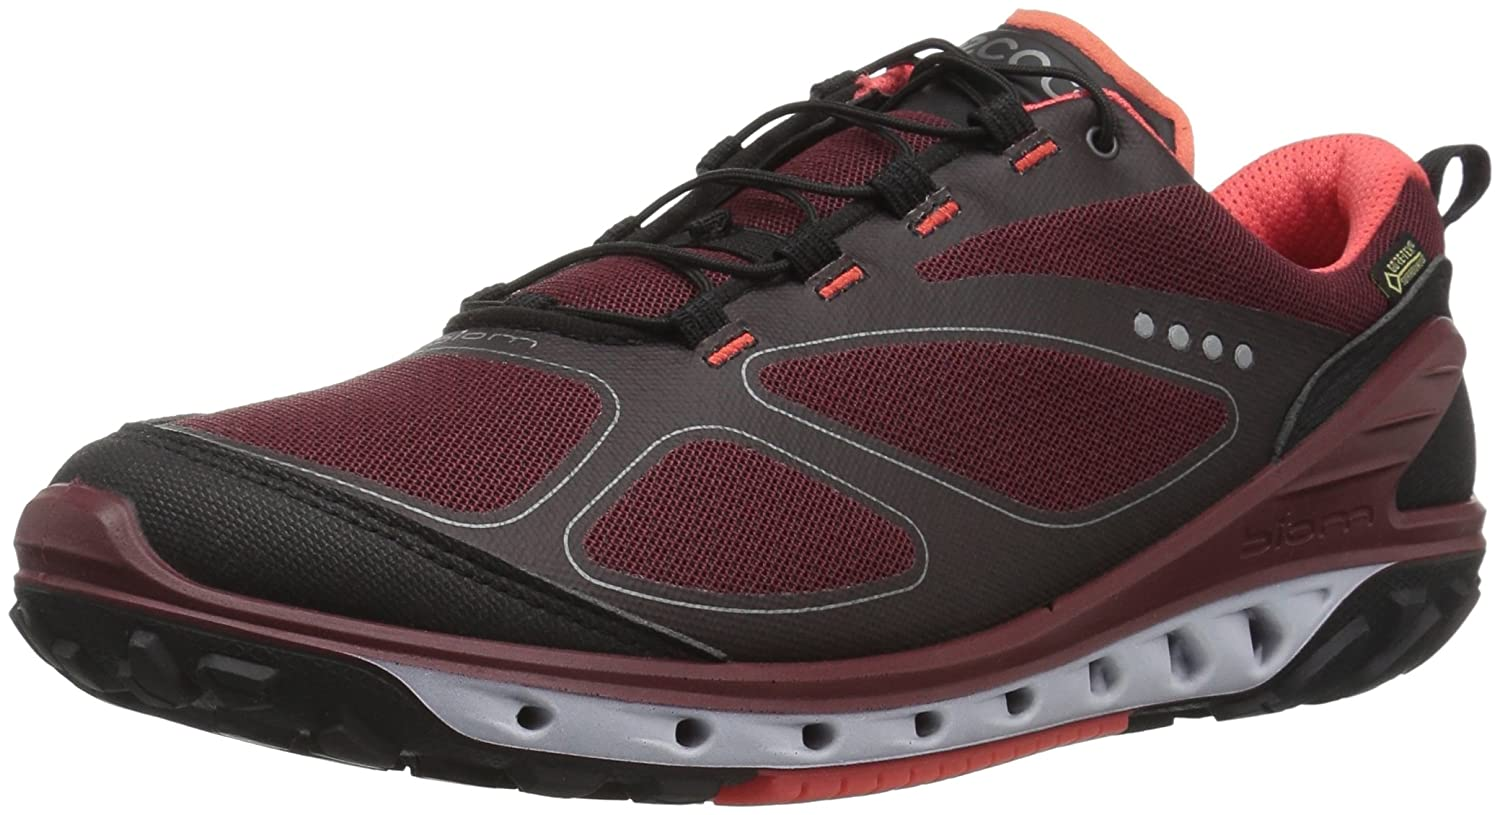 Black Port Coral bluesh ECCO Women's Biom Venture Gore-Tex hiking shoes